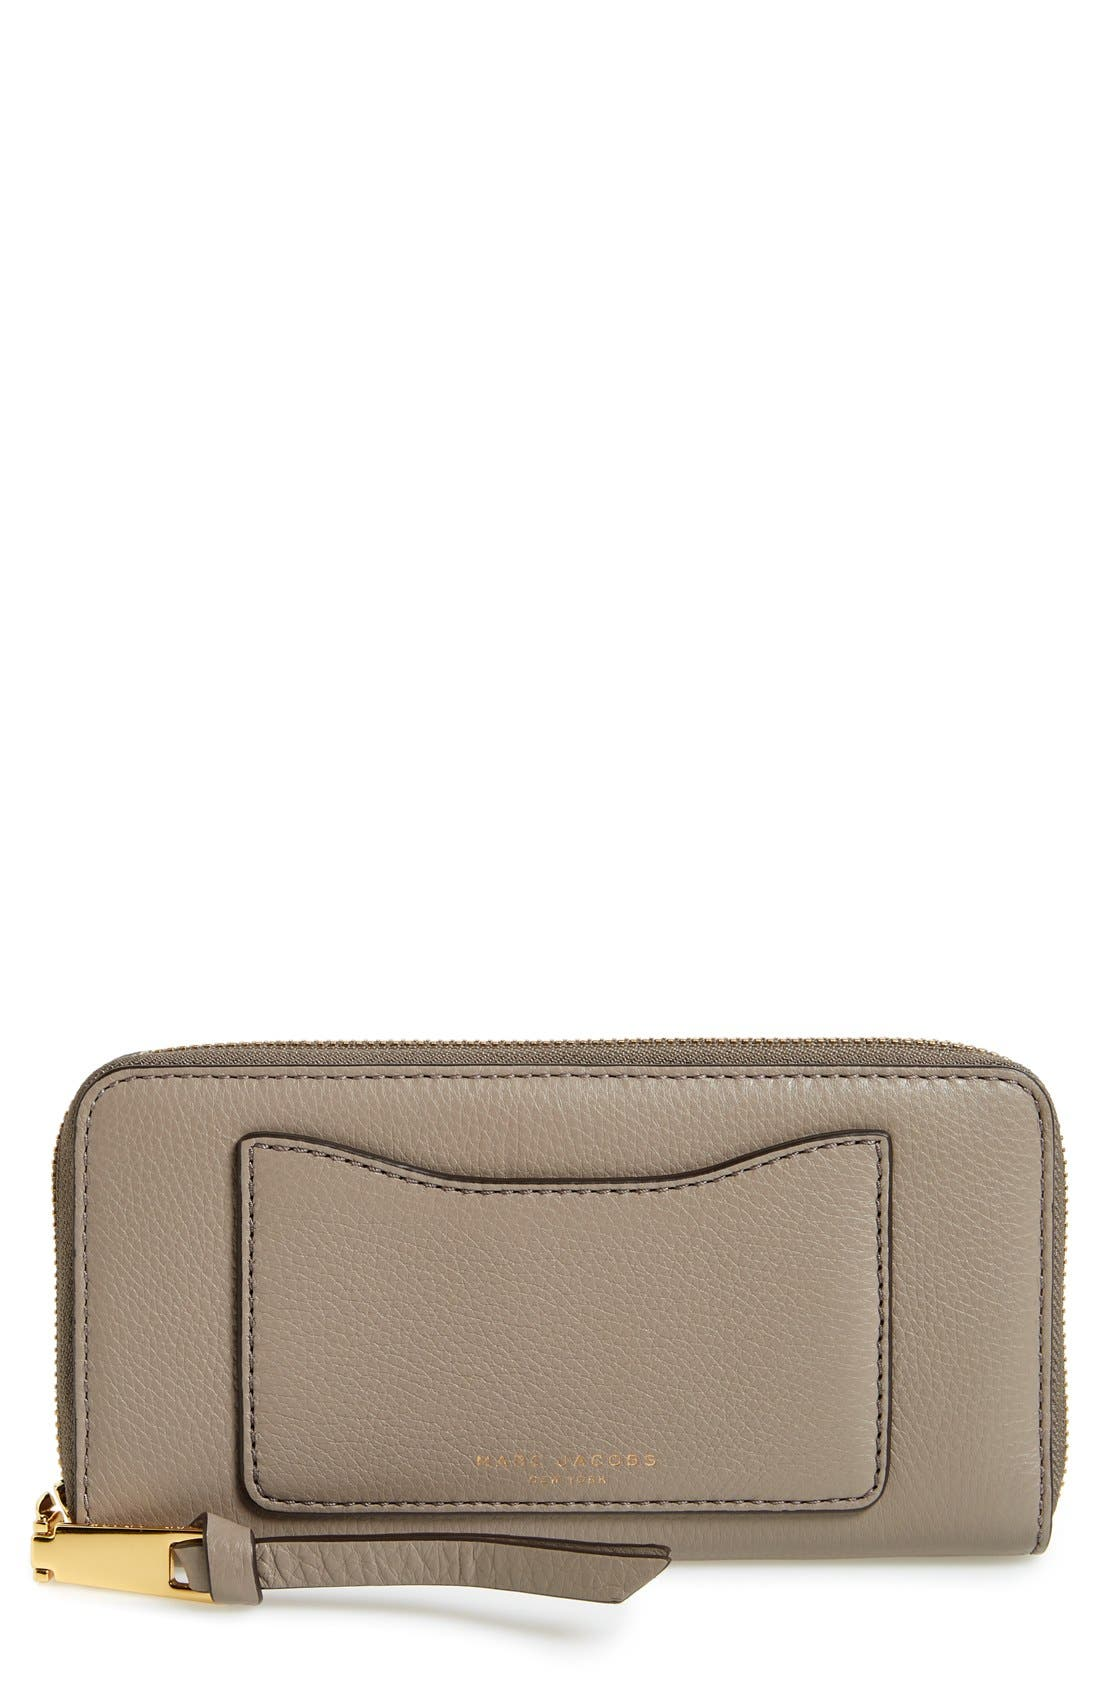 Main Image - MARC JACOBS 'Recruit Vertical' Leather Wallet